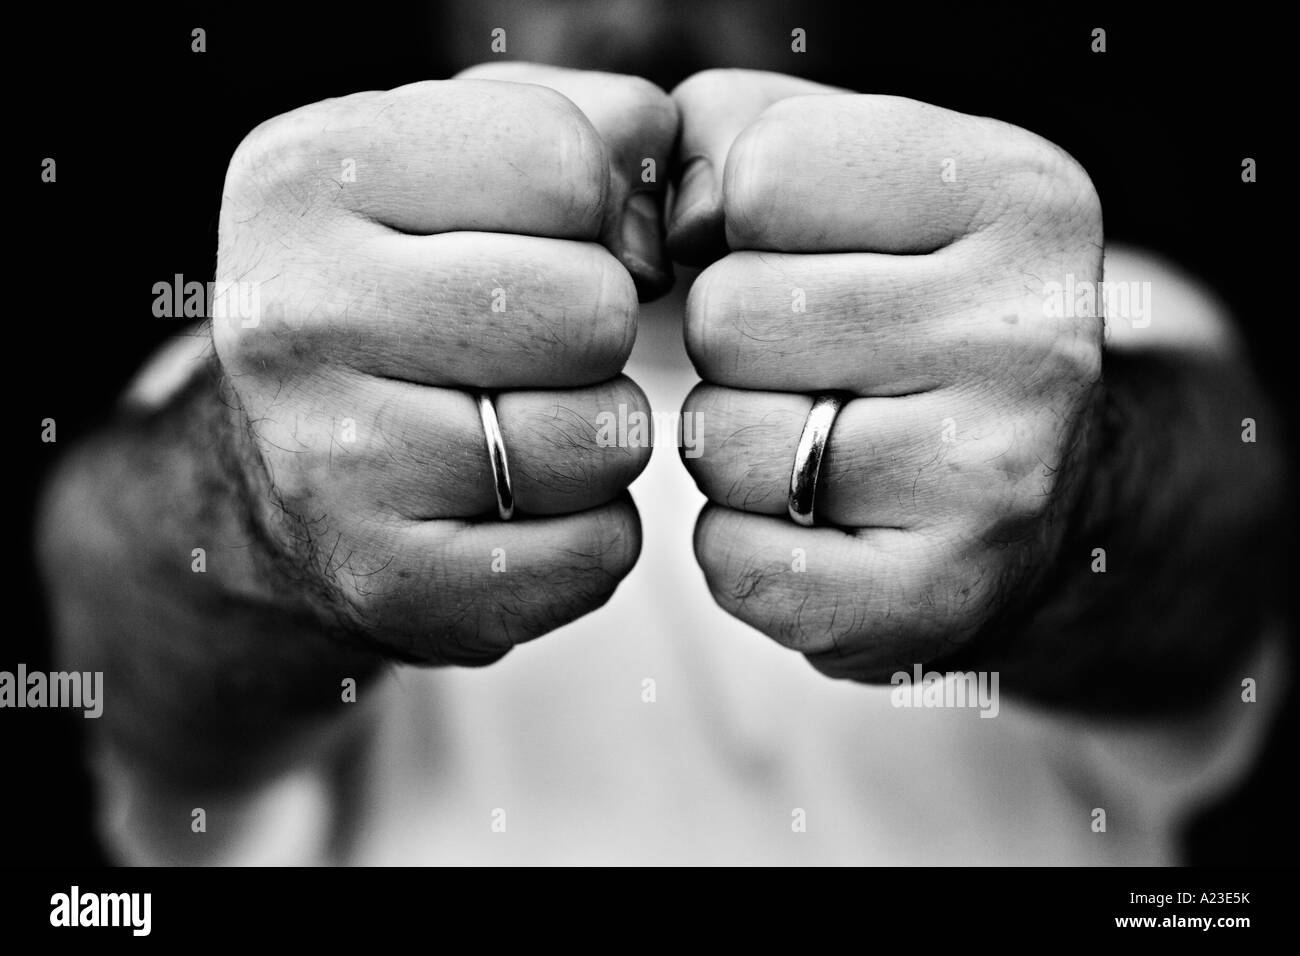 Two fists black and white close up - Stock Image